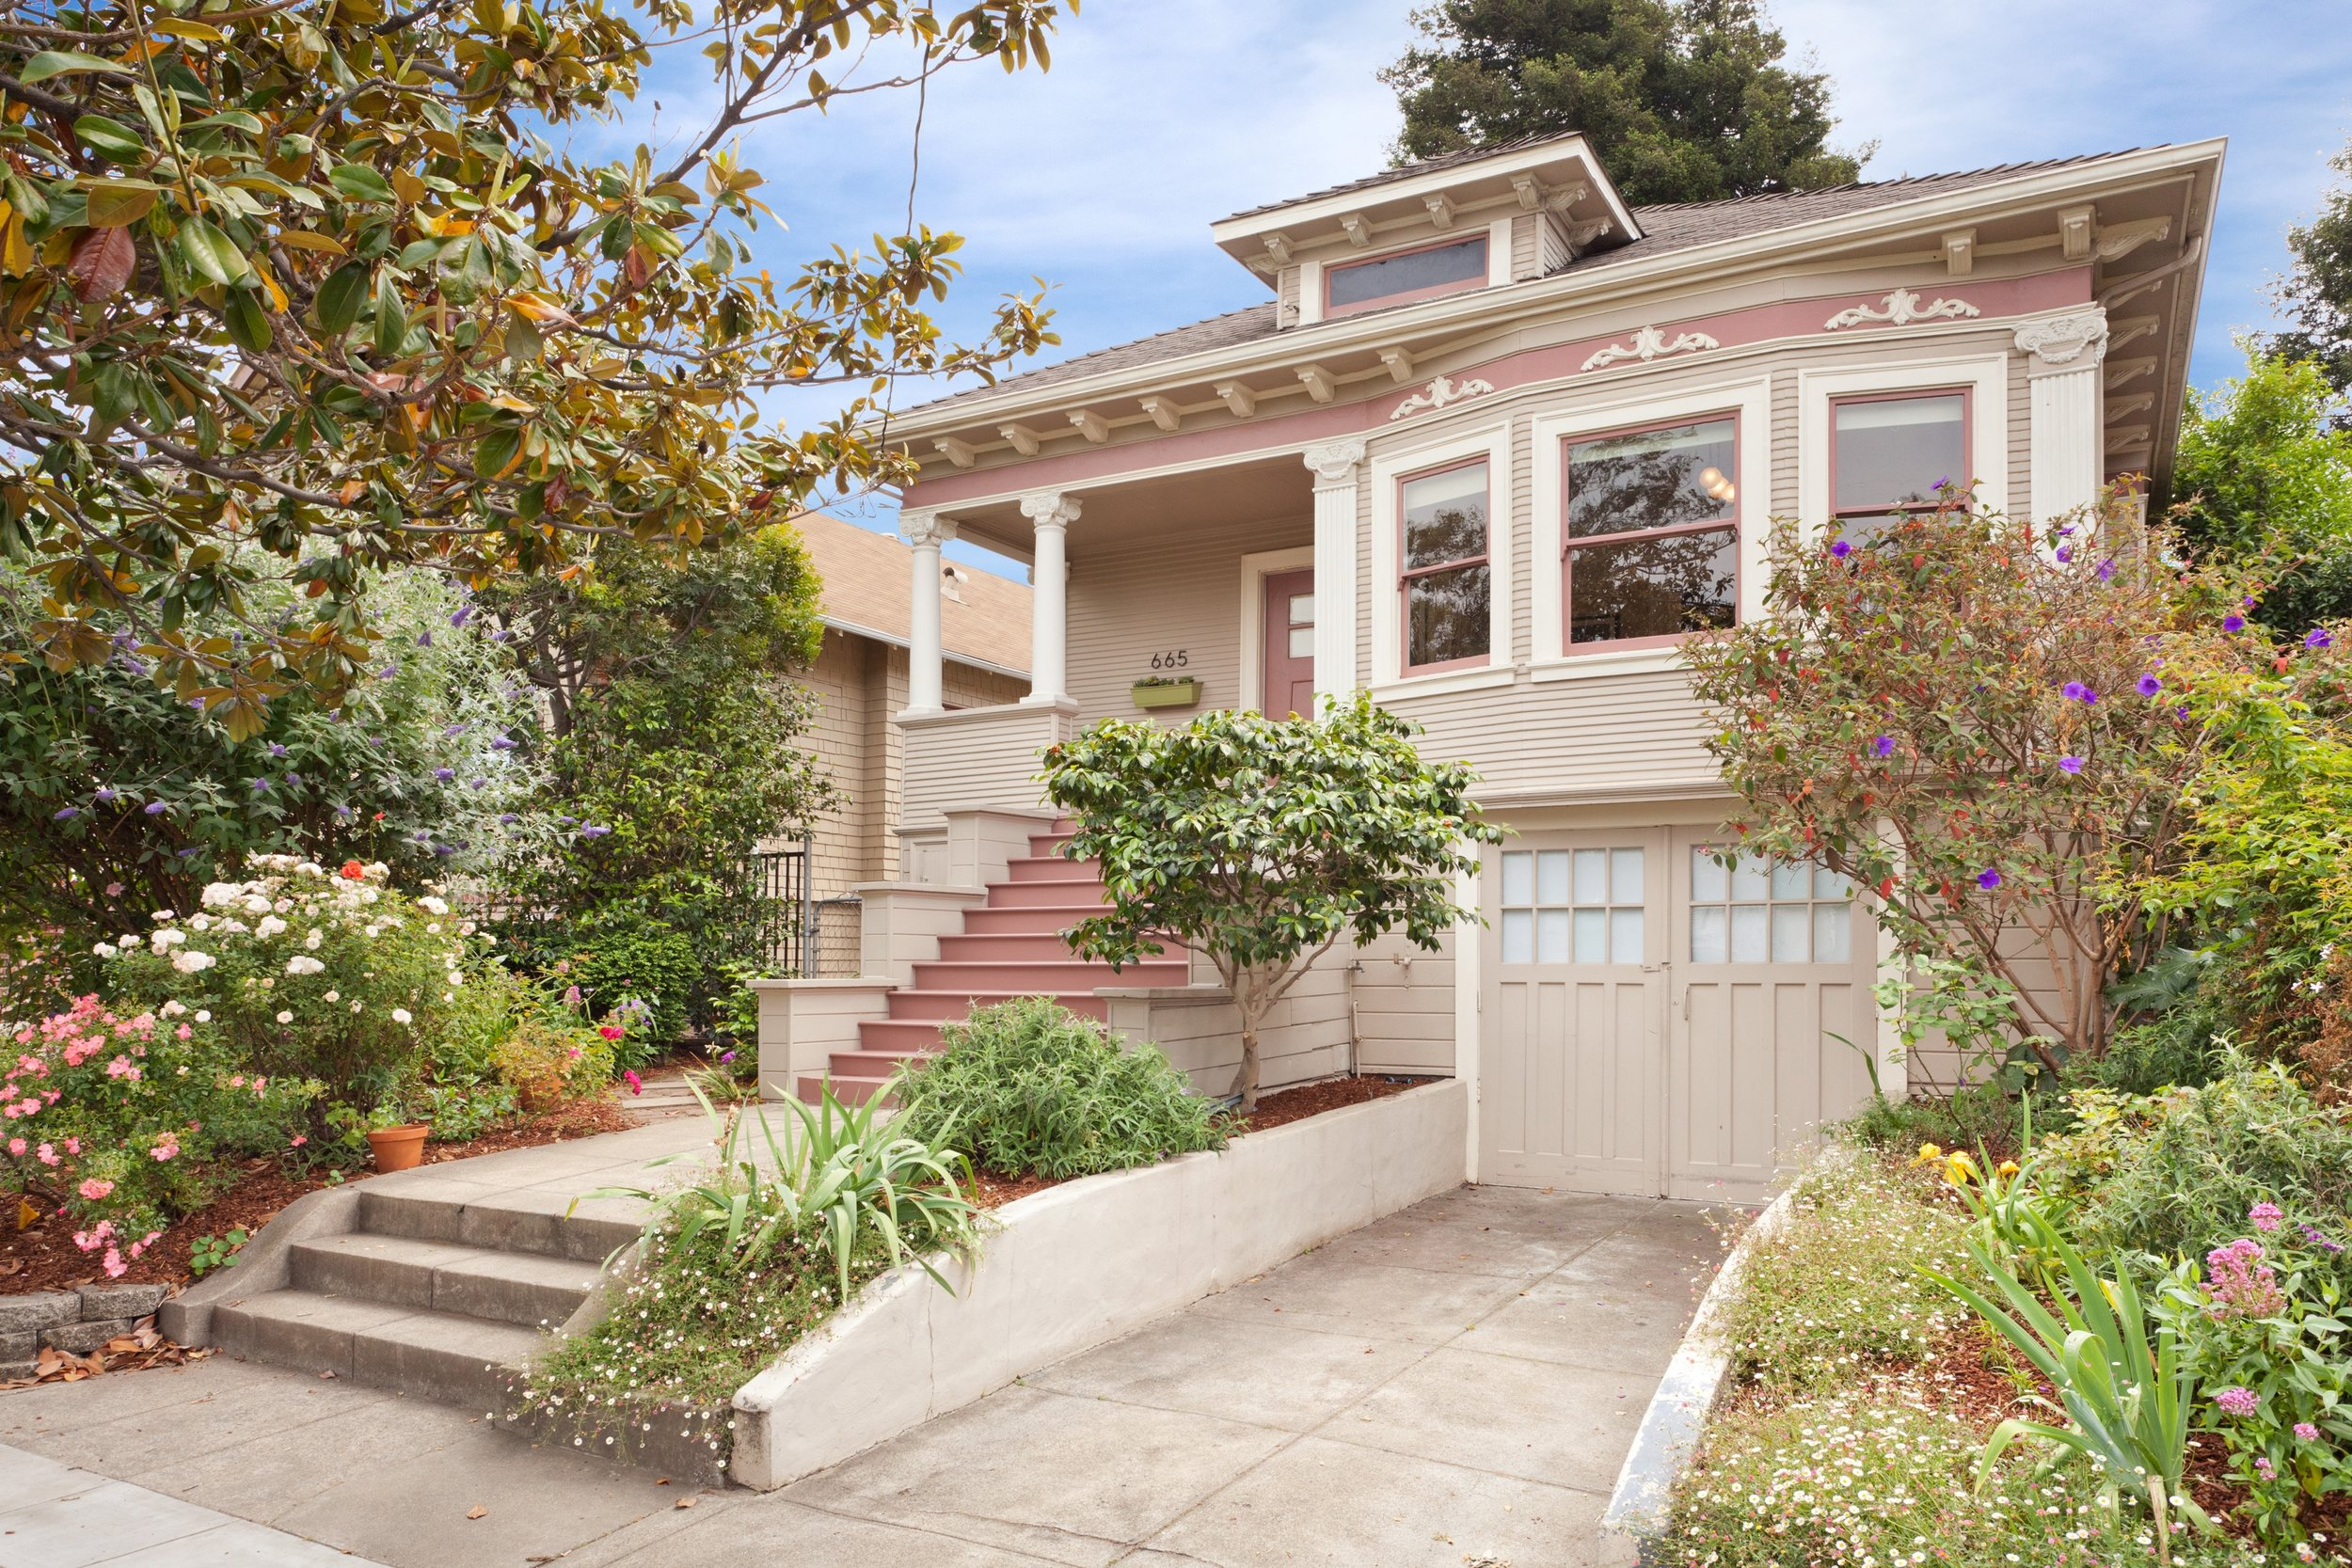 SOLD | 665 55TH STREET, OAKLAND $1,050,000